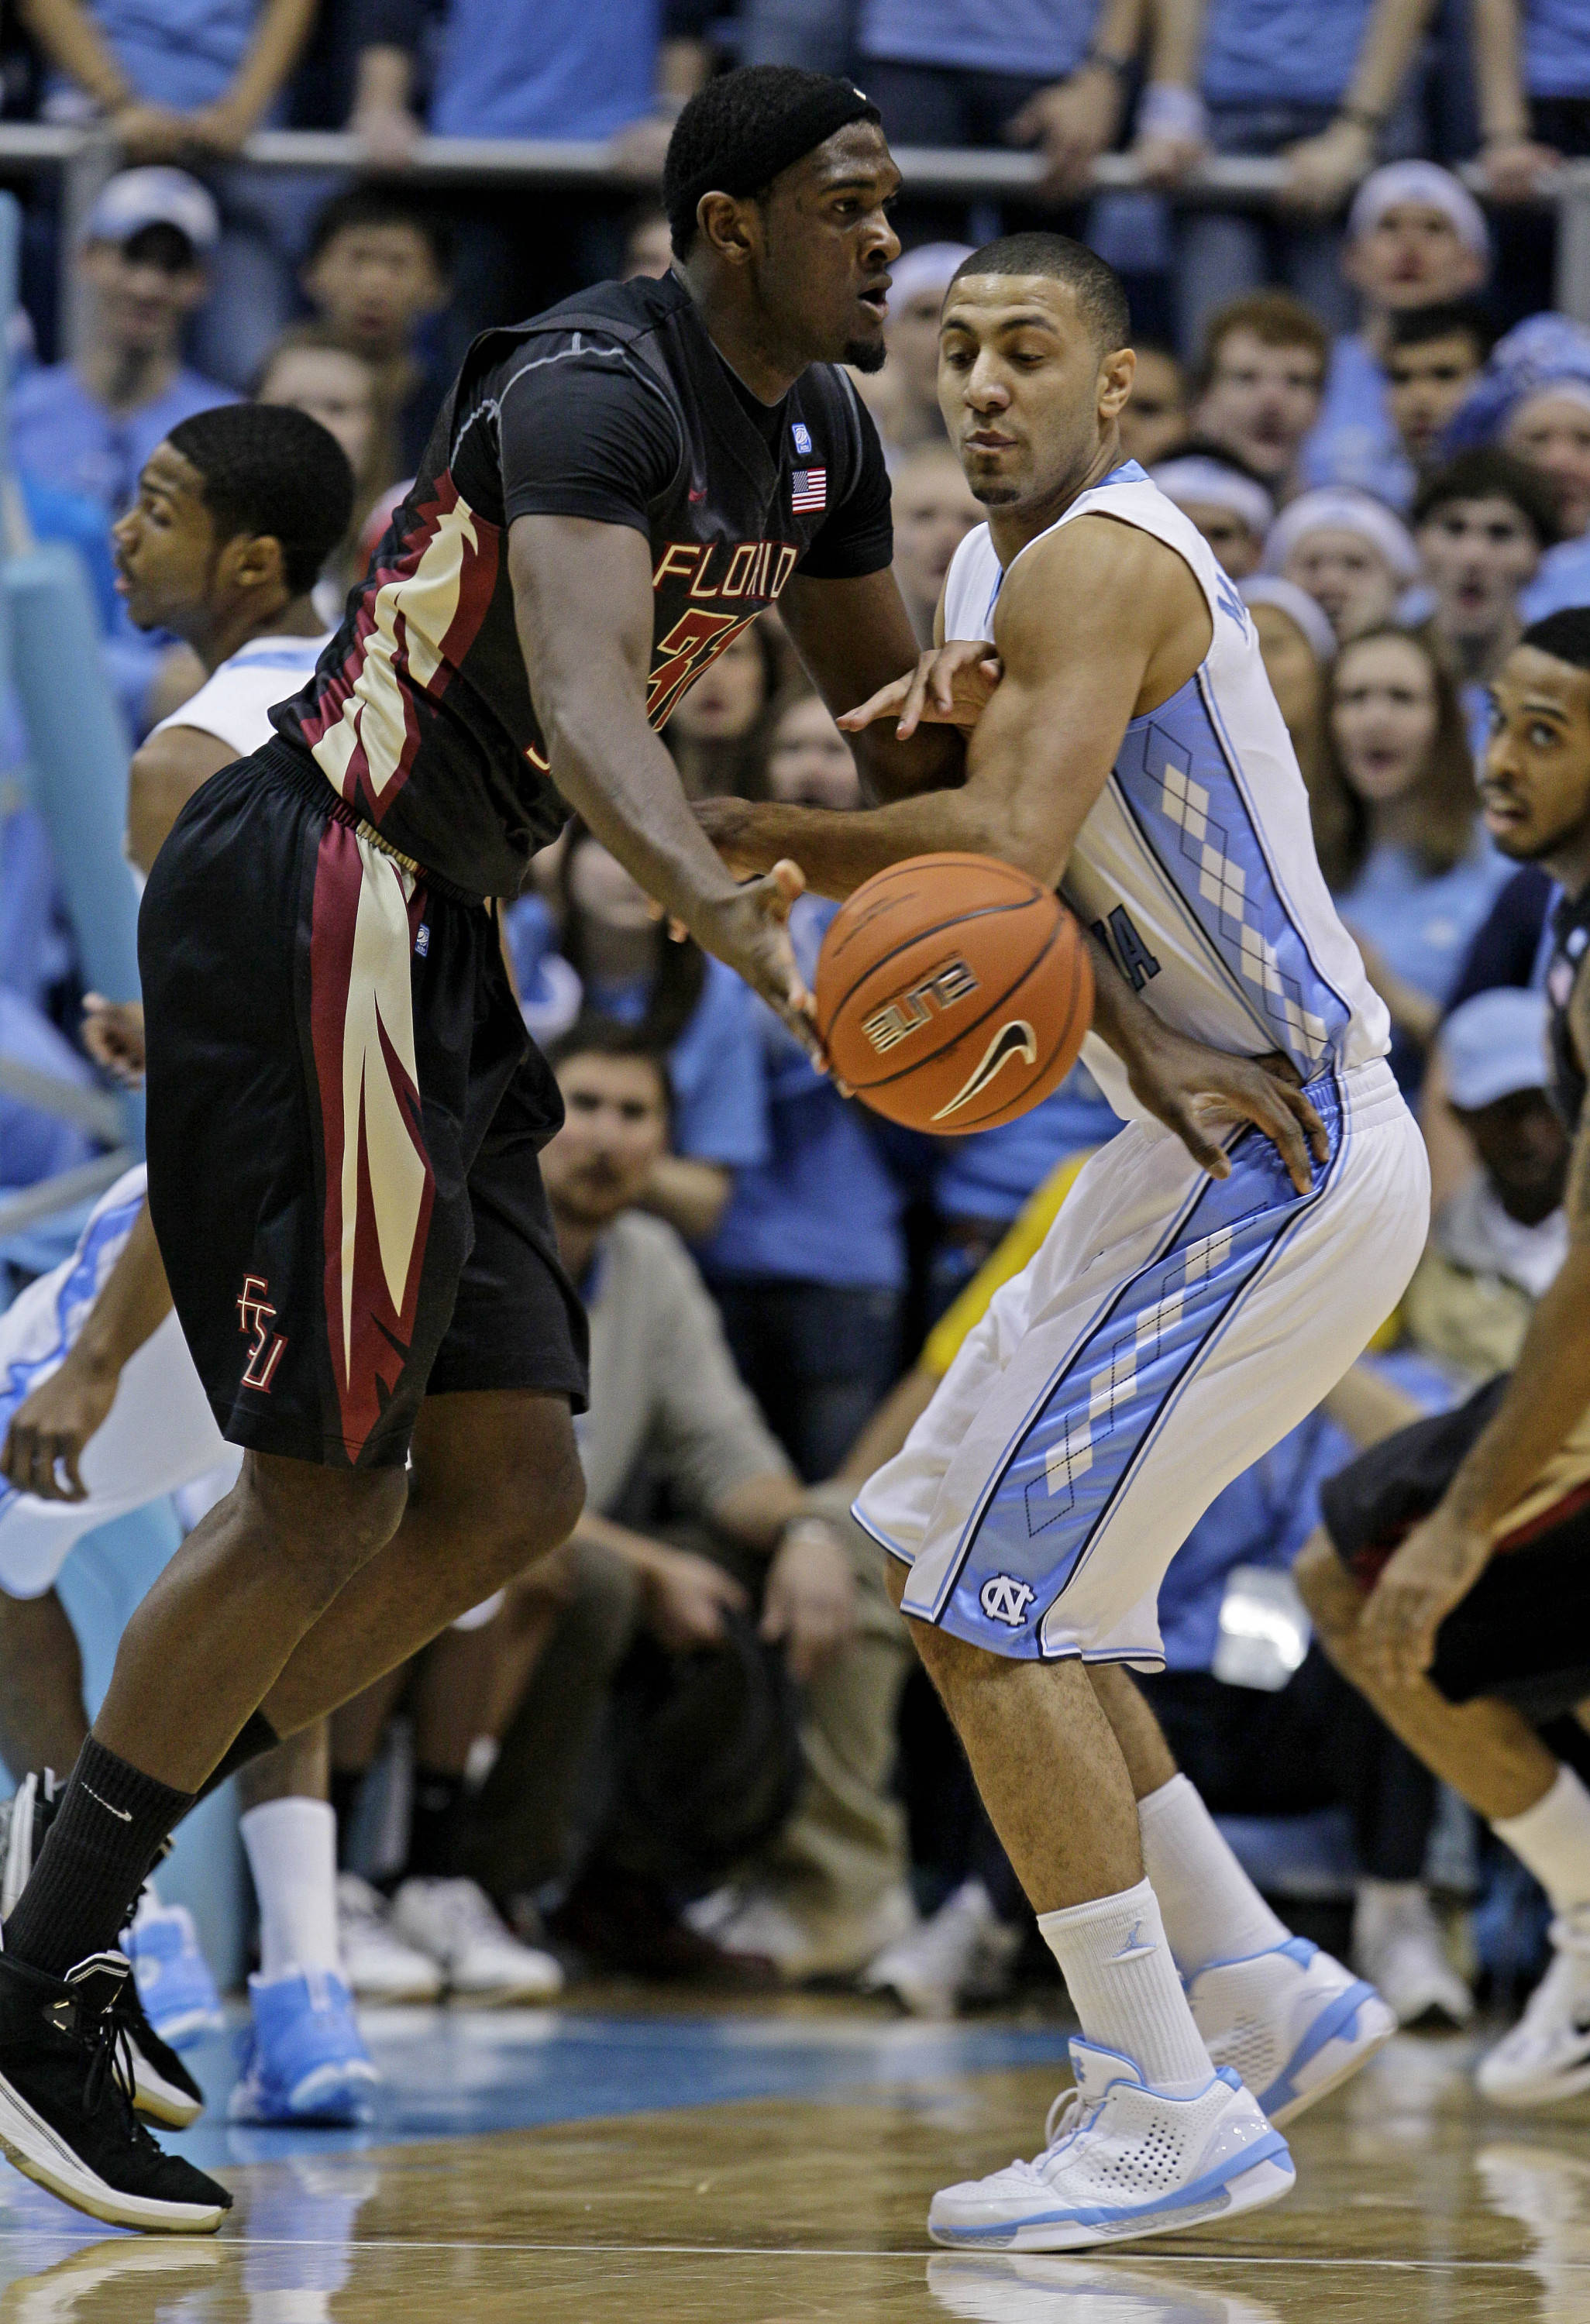 North Carolina's Kendall Marshall, right, guards Florida State's Chris Singleton during the first half of an NCAA college basketball game in Chapel Hill, N.C., Sunday, Feb. 6, 2011. (AP Photo/Gerry Broome)